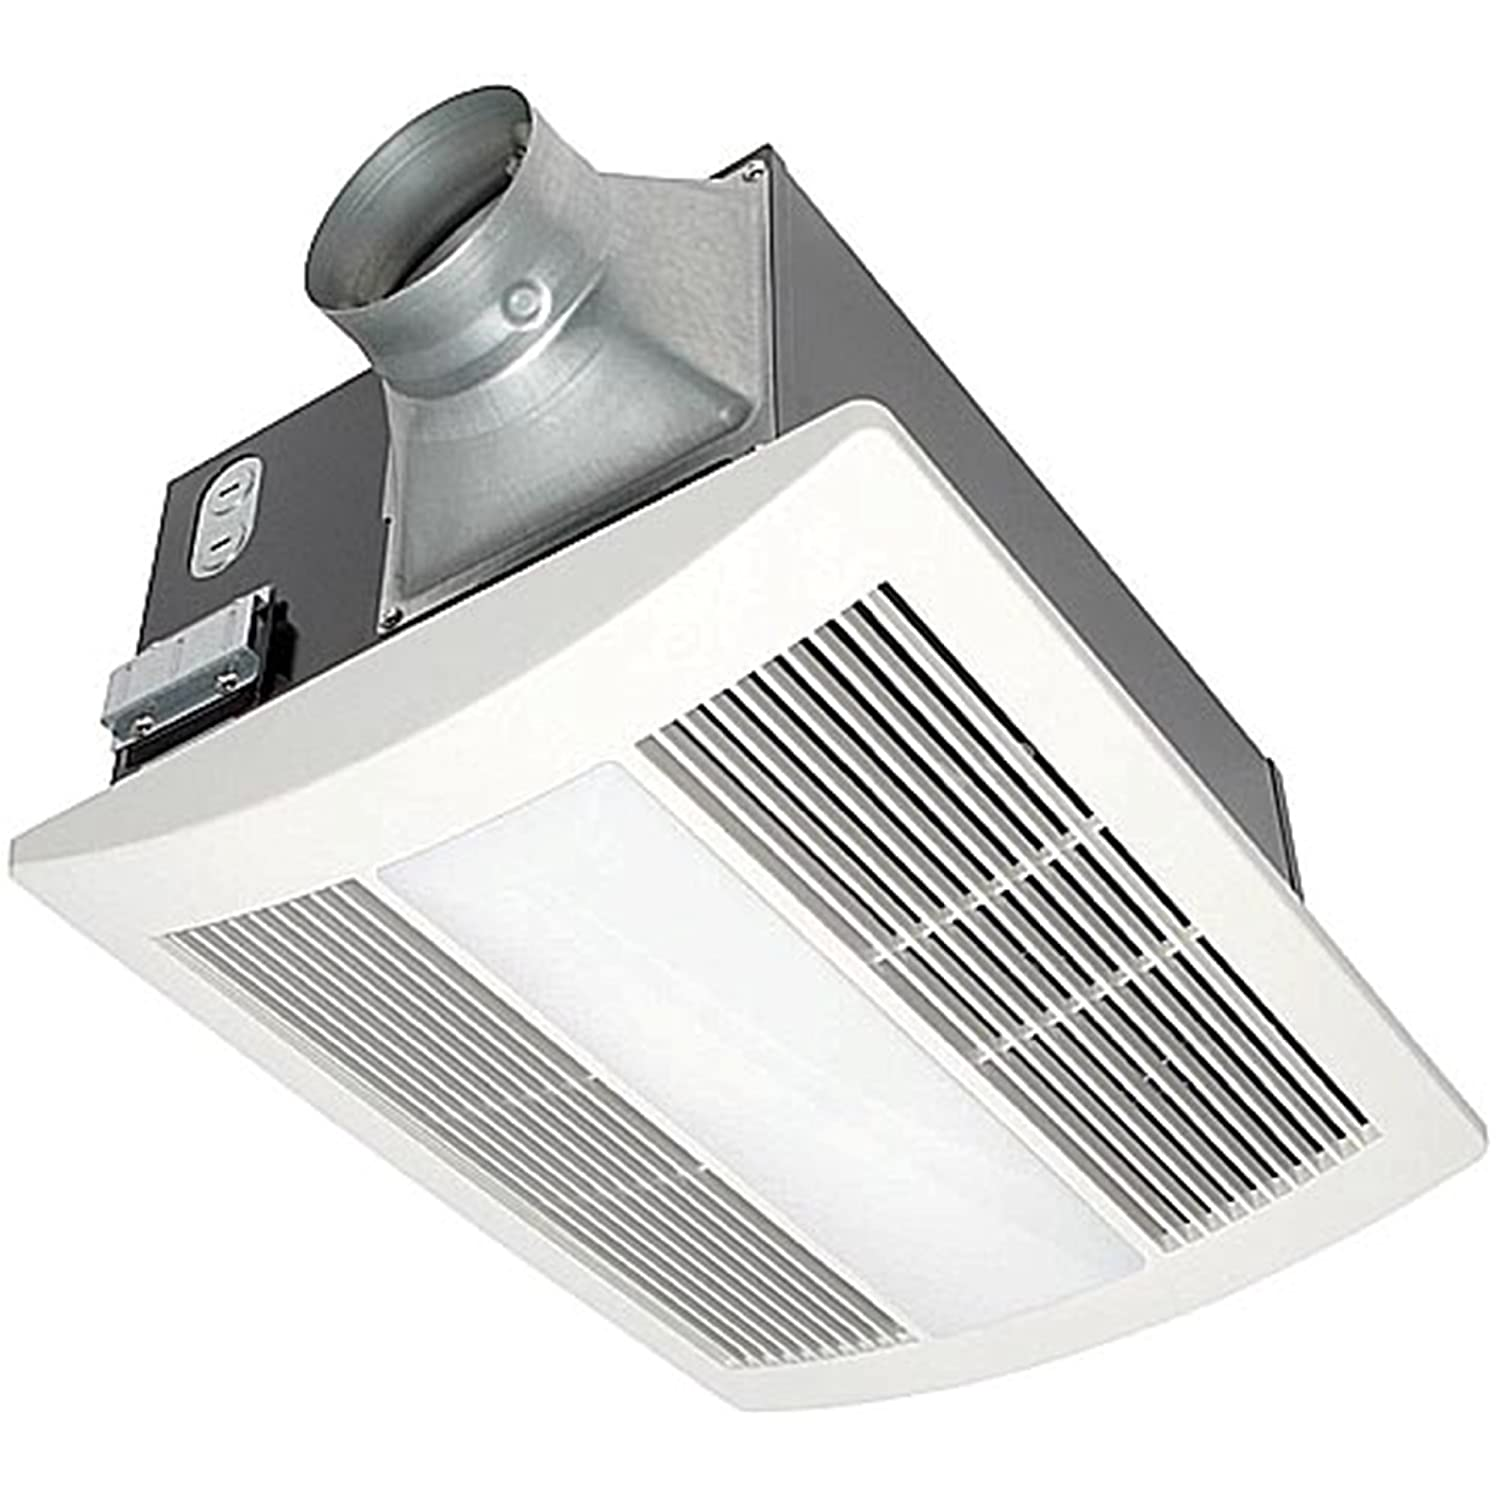 Panasonic FV 11VH2 Whisper Warm 110 CFM Ceiling Mounted Fan, Heat  Combination, White/Cream   Heaters   Amazon.com